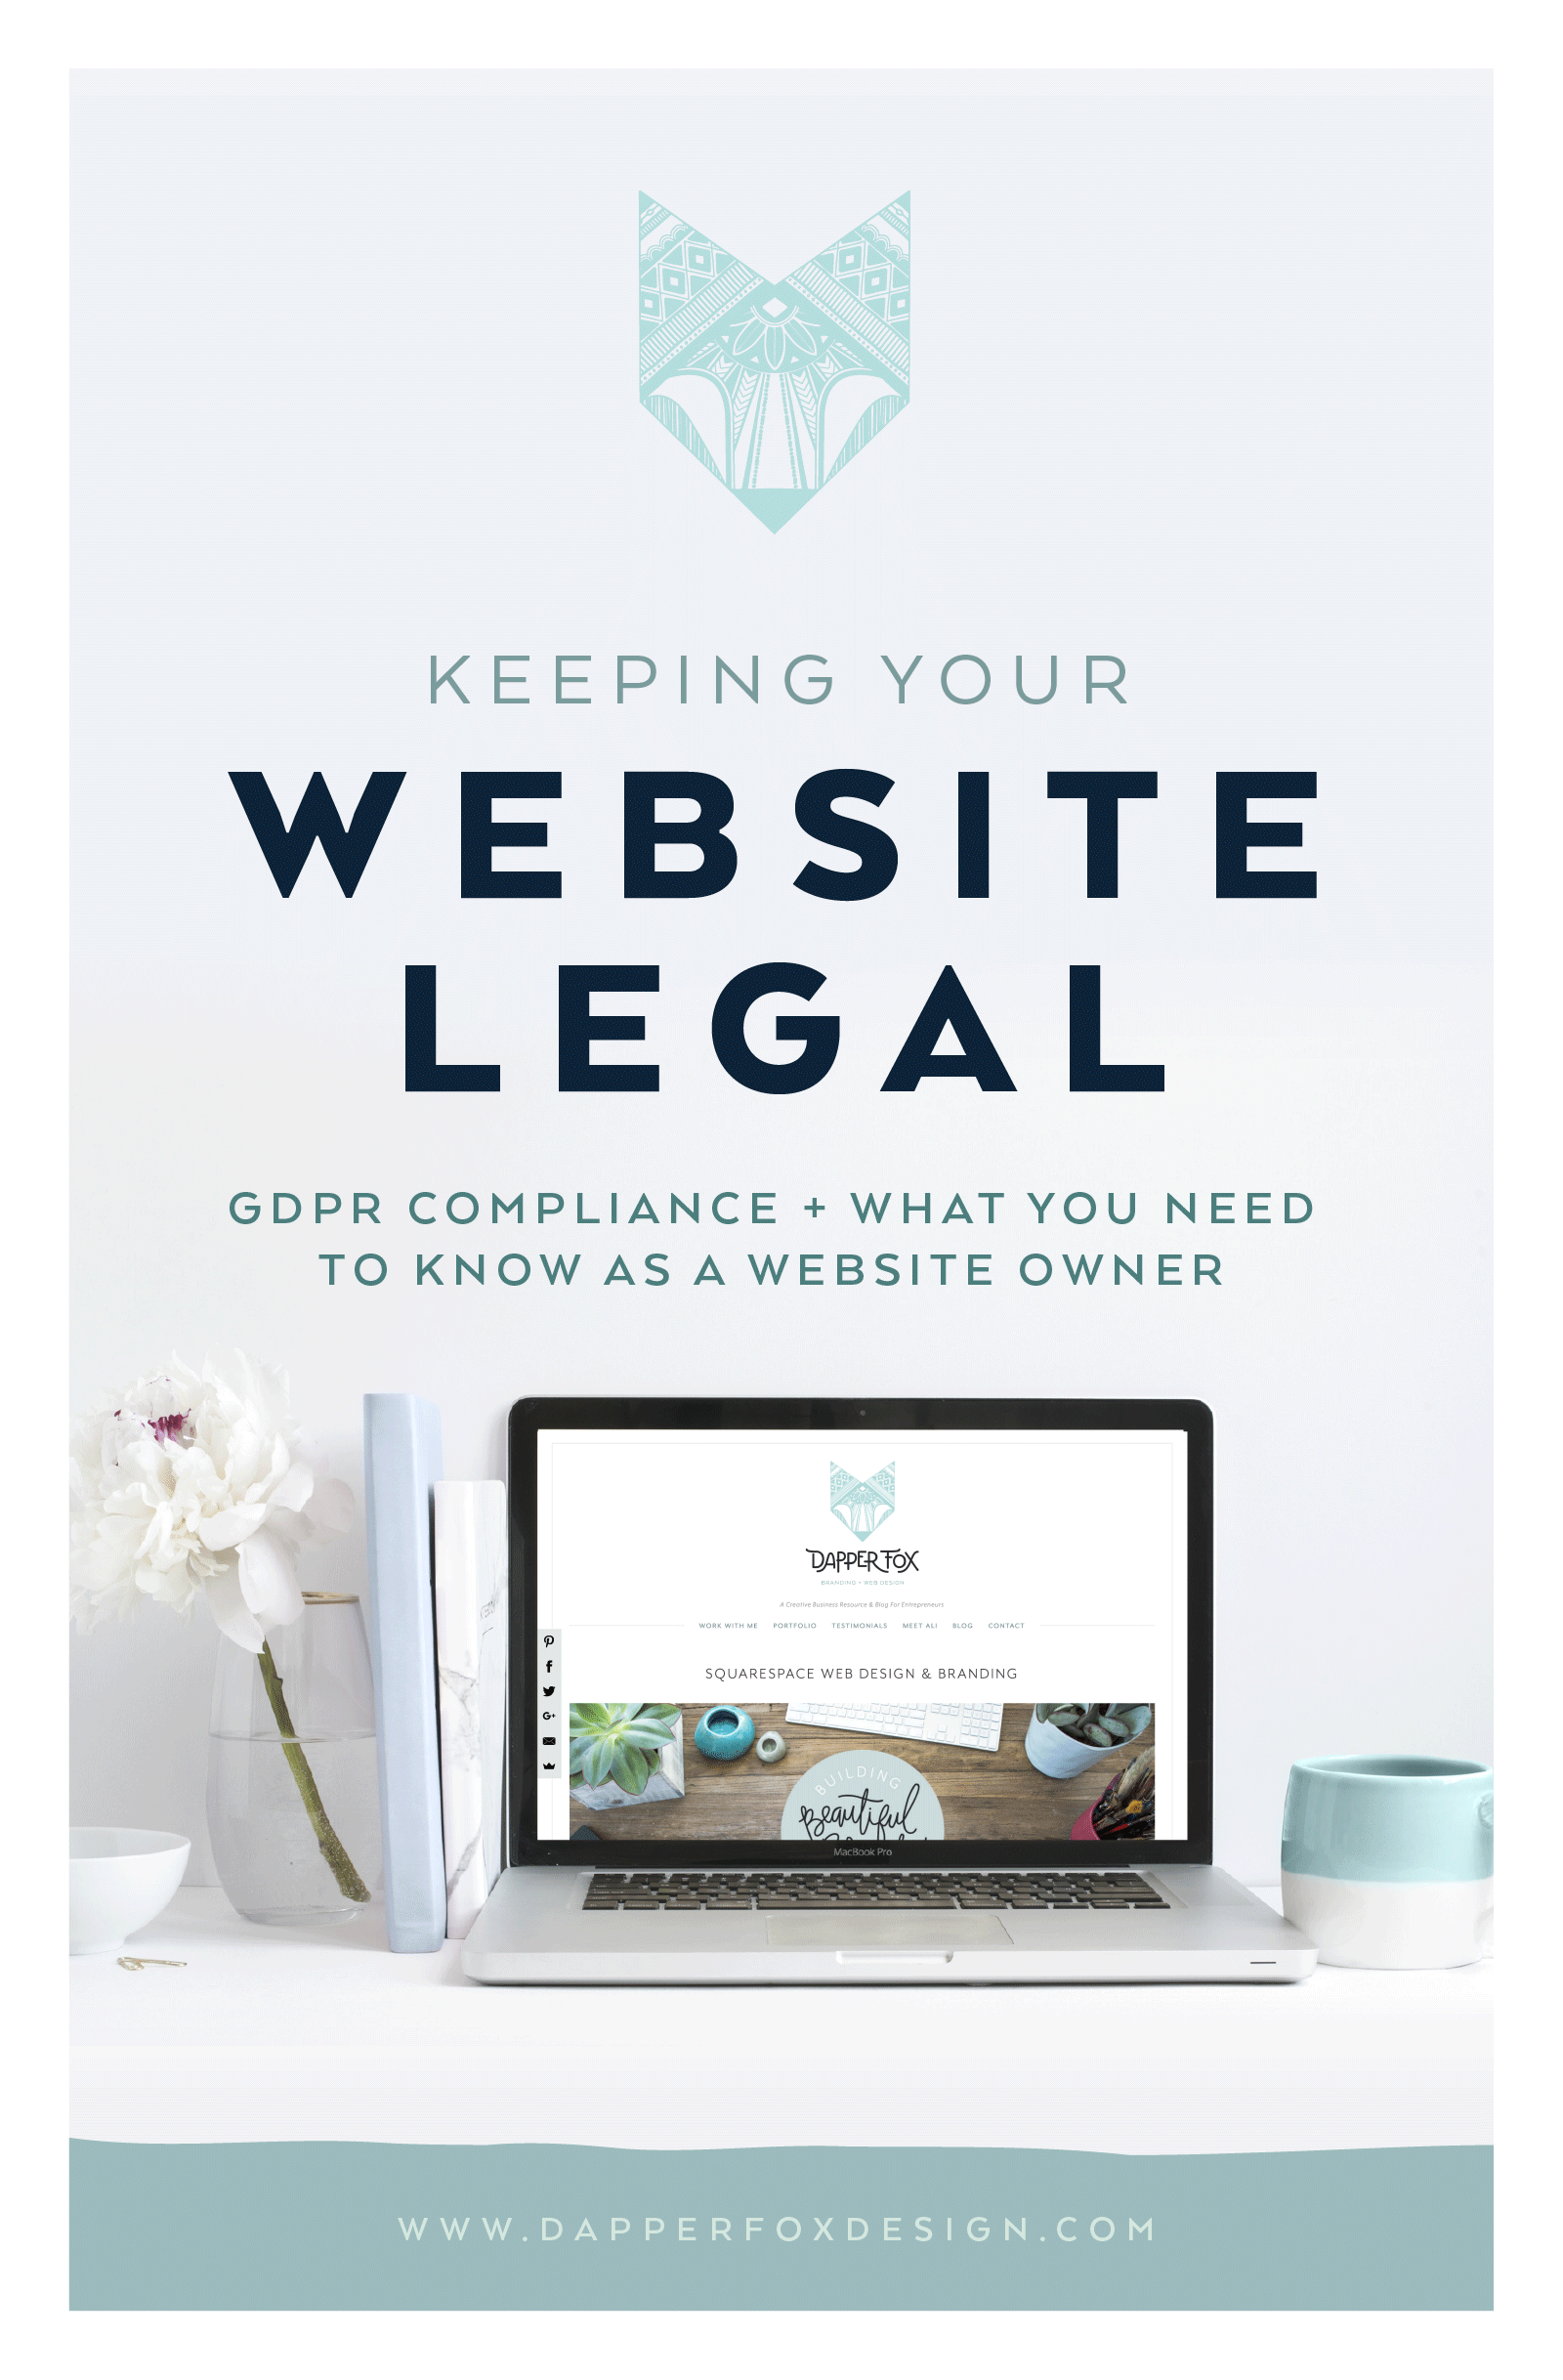 GDPR-Compliance-For-Website-Owners-and-Keeping-Your-Website-Legal.png